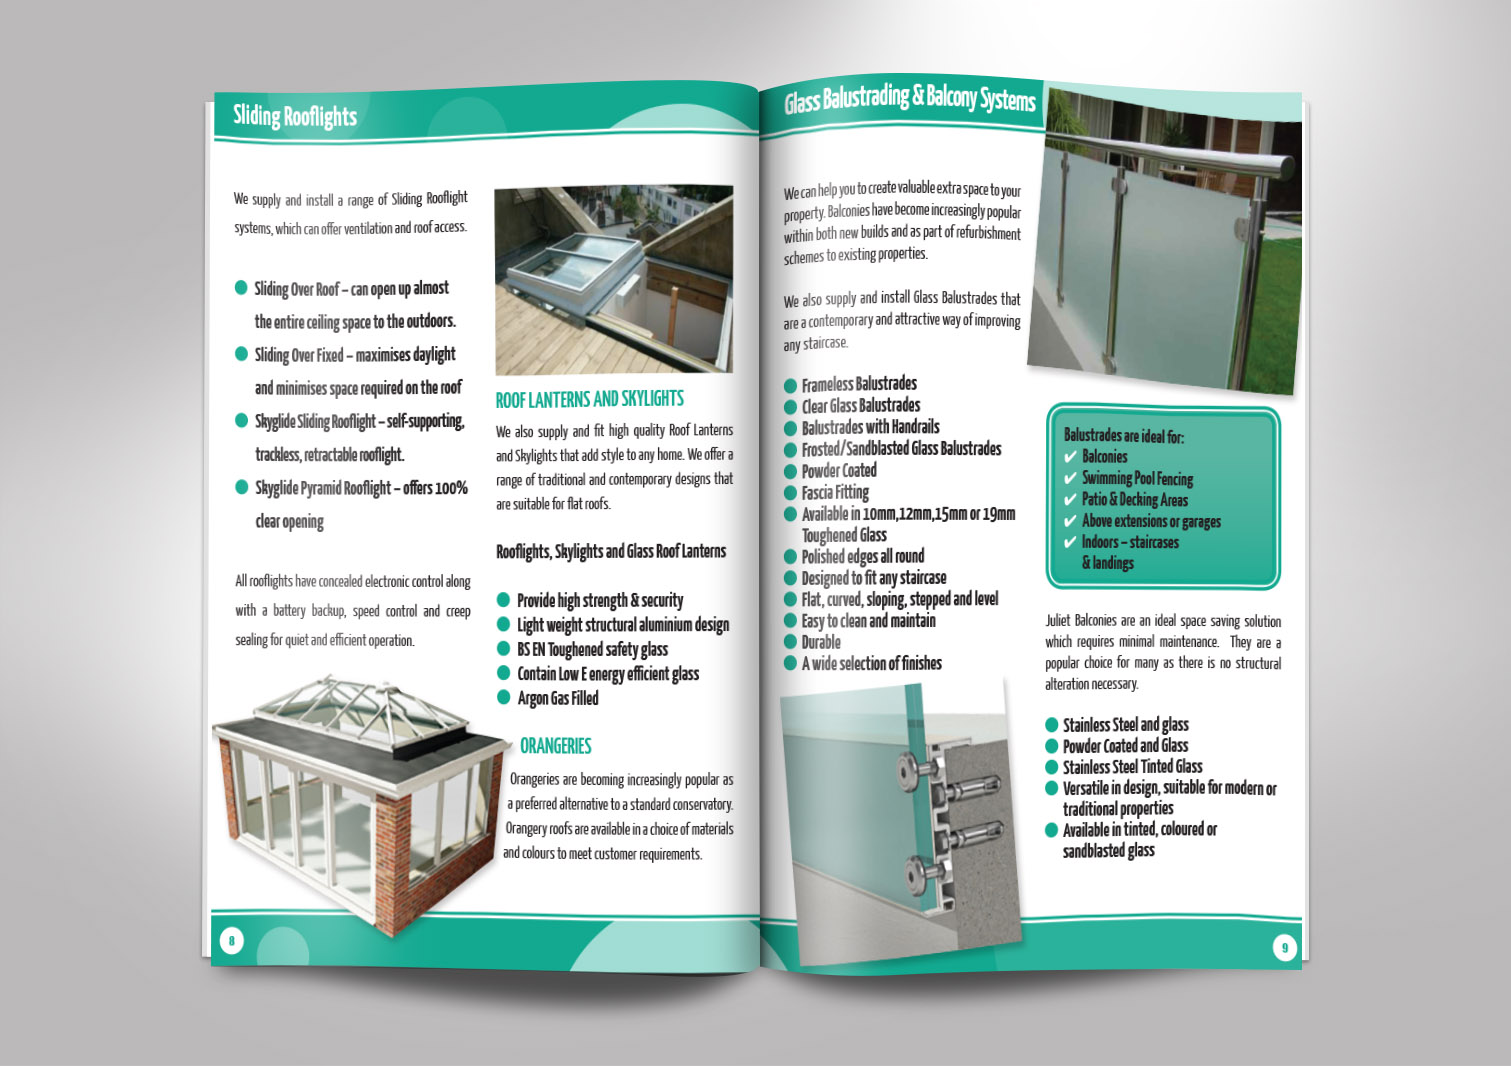 JD Glass Limited Brochures Booklets Inside Pages 8 and 9